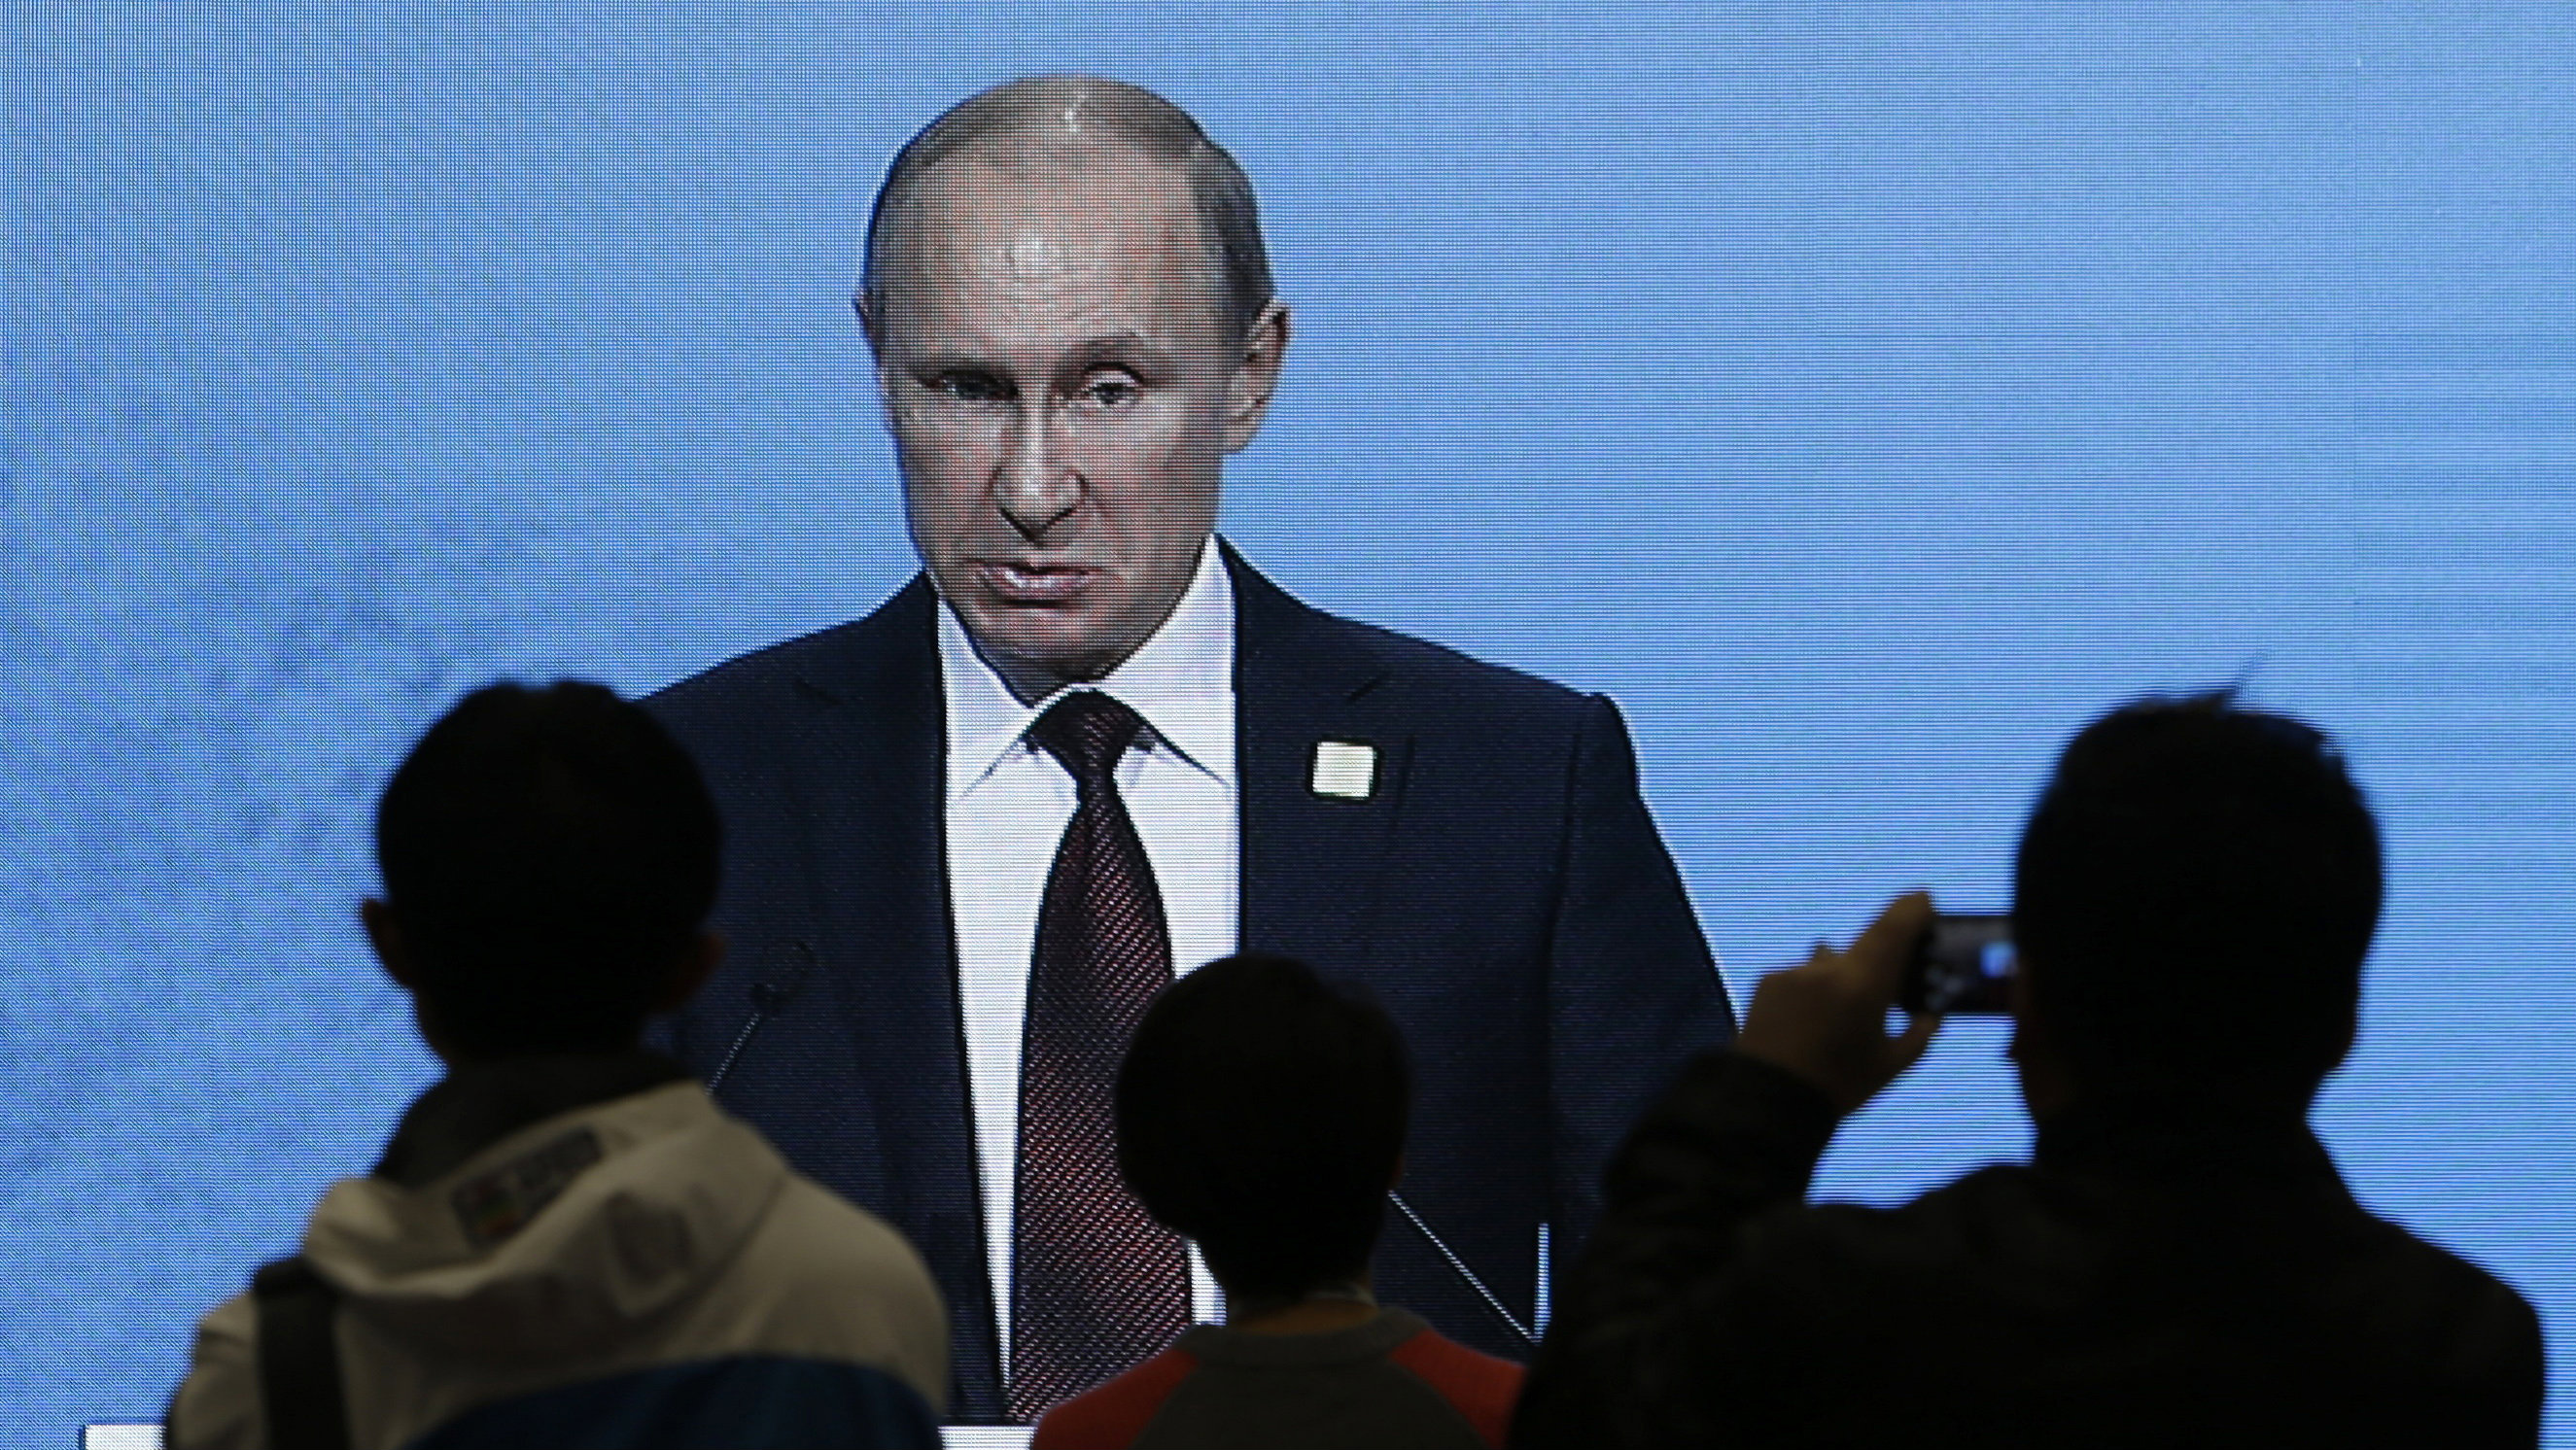 Journalists watch a live broadcast on an electronic screen showing Russia's President Vladimir Putin giving a speech during the APEC CEO Summit in Beijing, November 10, 2014.